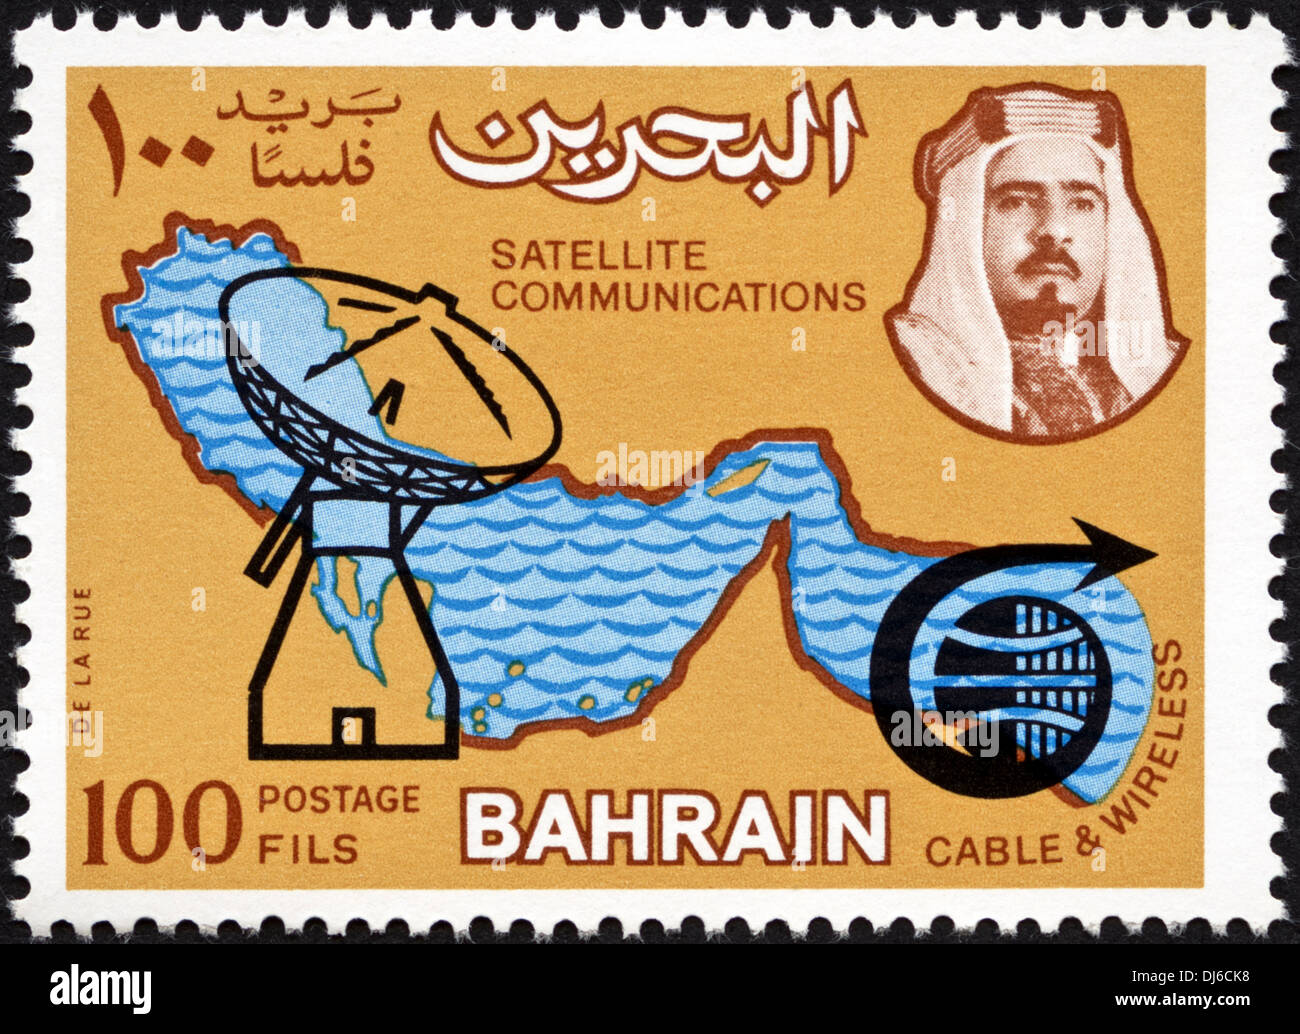 postage stamp Bahrain 100 Fils featuring Cable & Wireless Satellite Communications dated 1967 - Stock Image